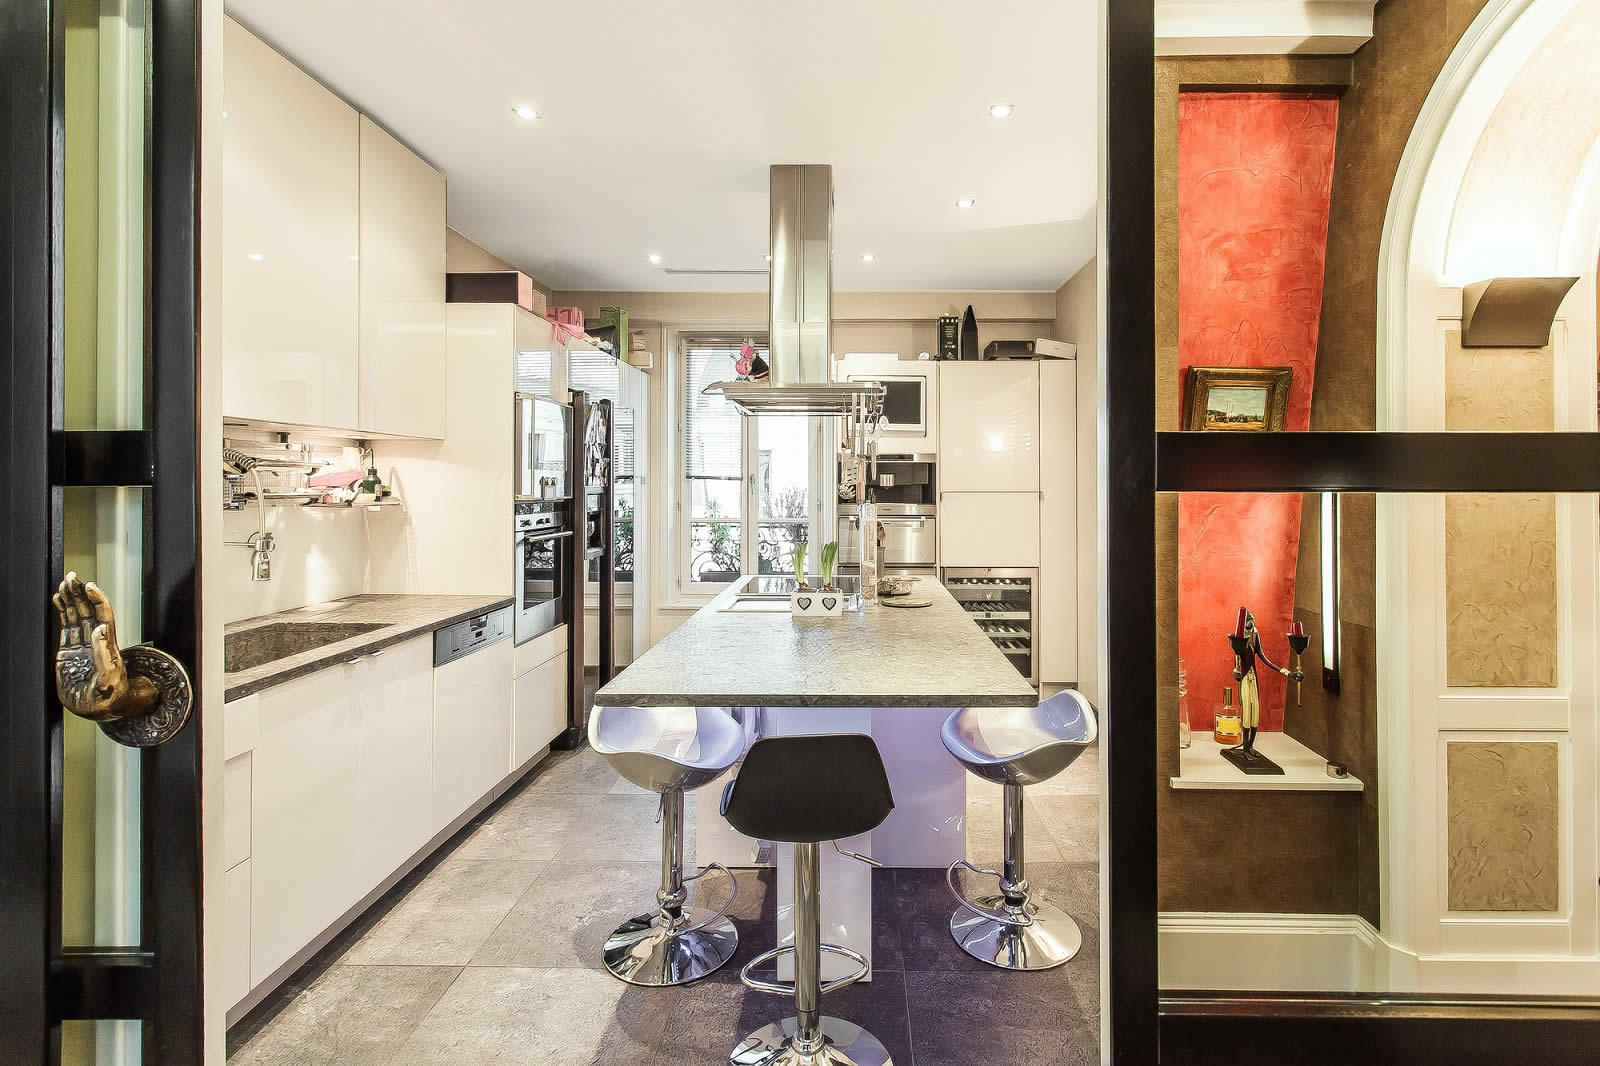 Duplex for sale in Lyon: Fireplace, Independent Kitchen, Reading ...